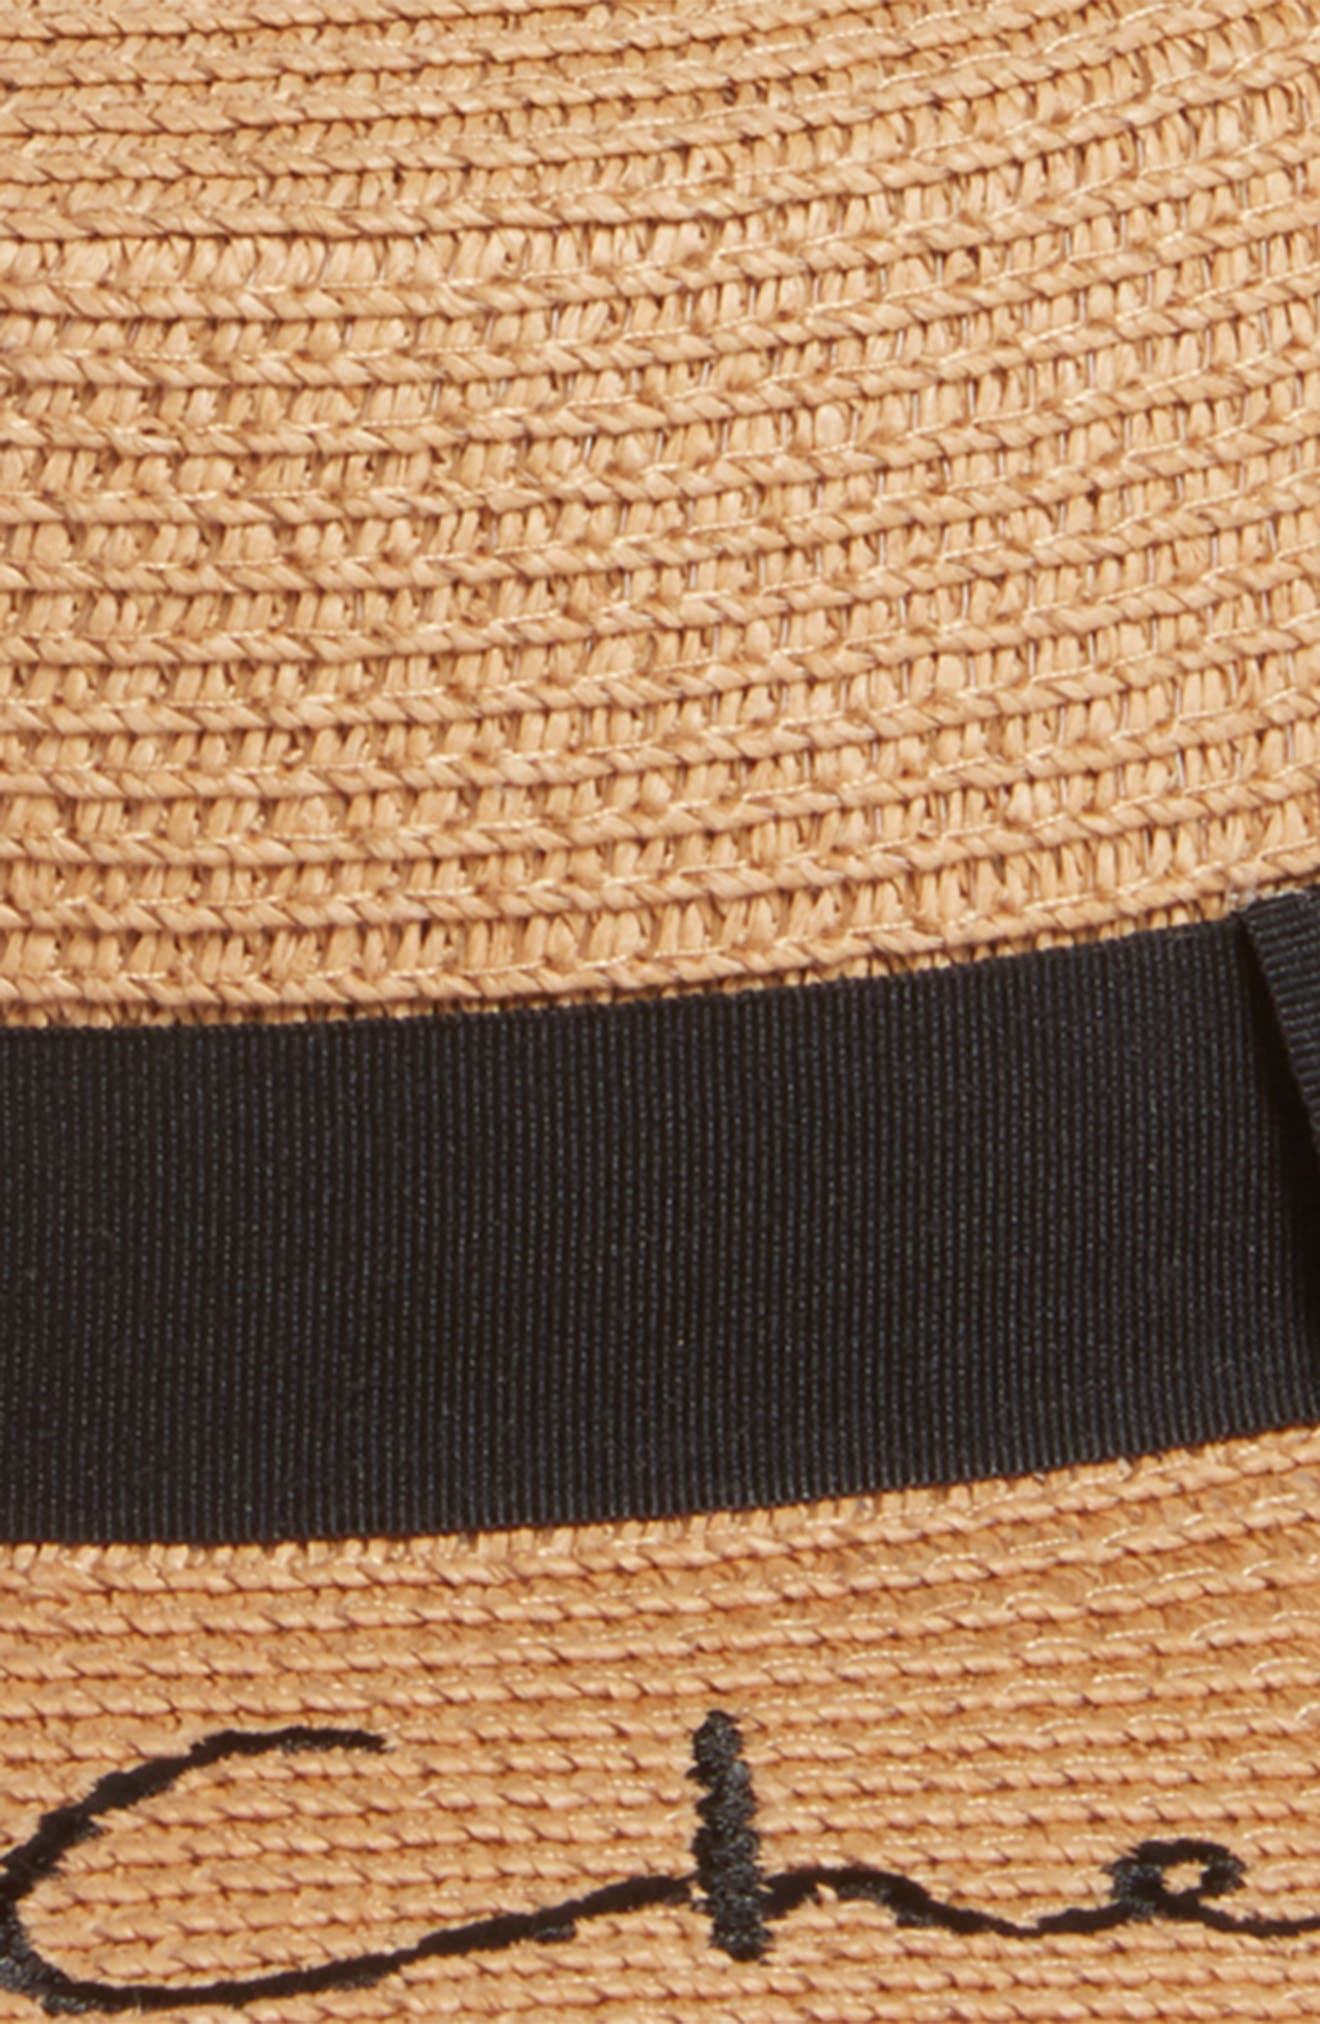 Verbiage Frayed Edge Straw Boater Hat,                             Alternate thumbnail 2, color,                             250